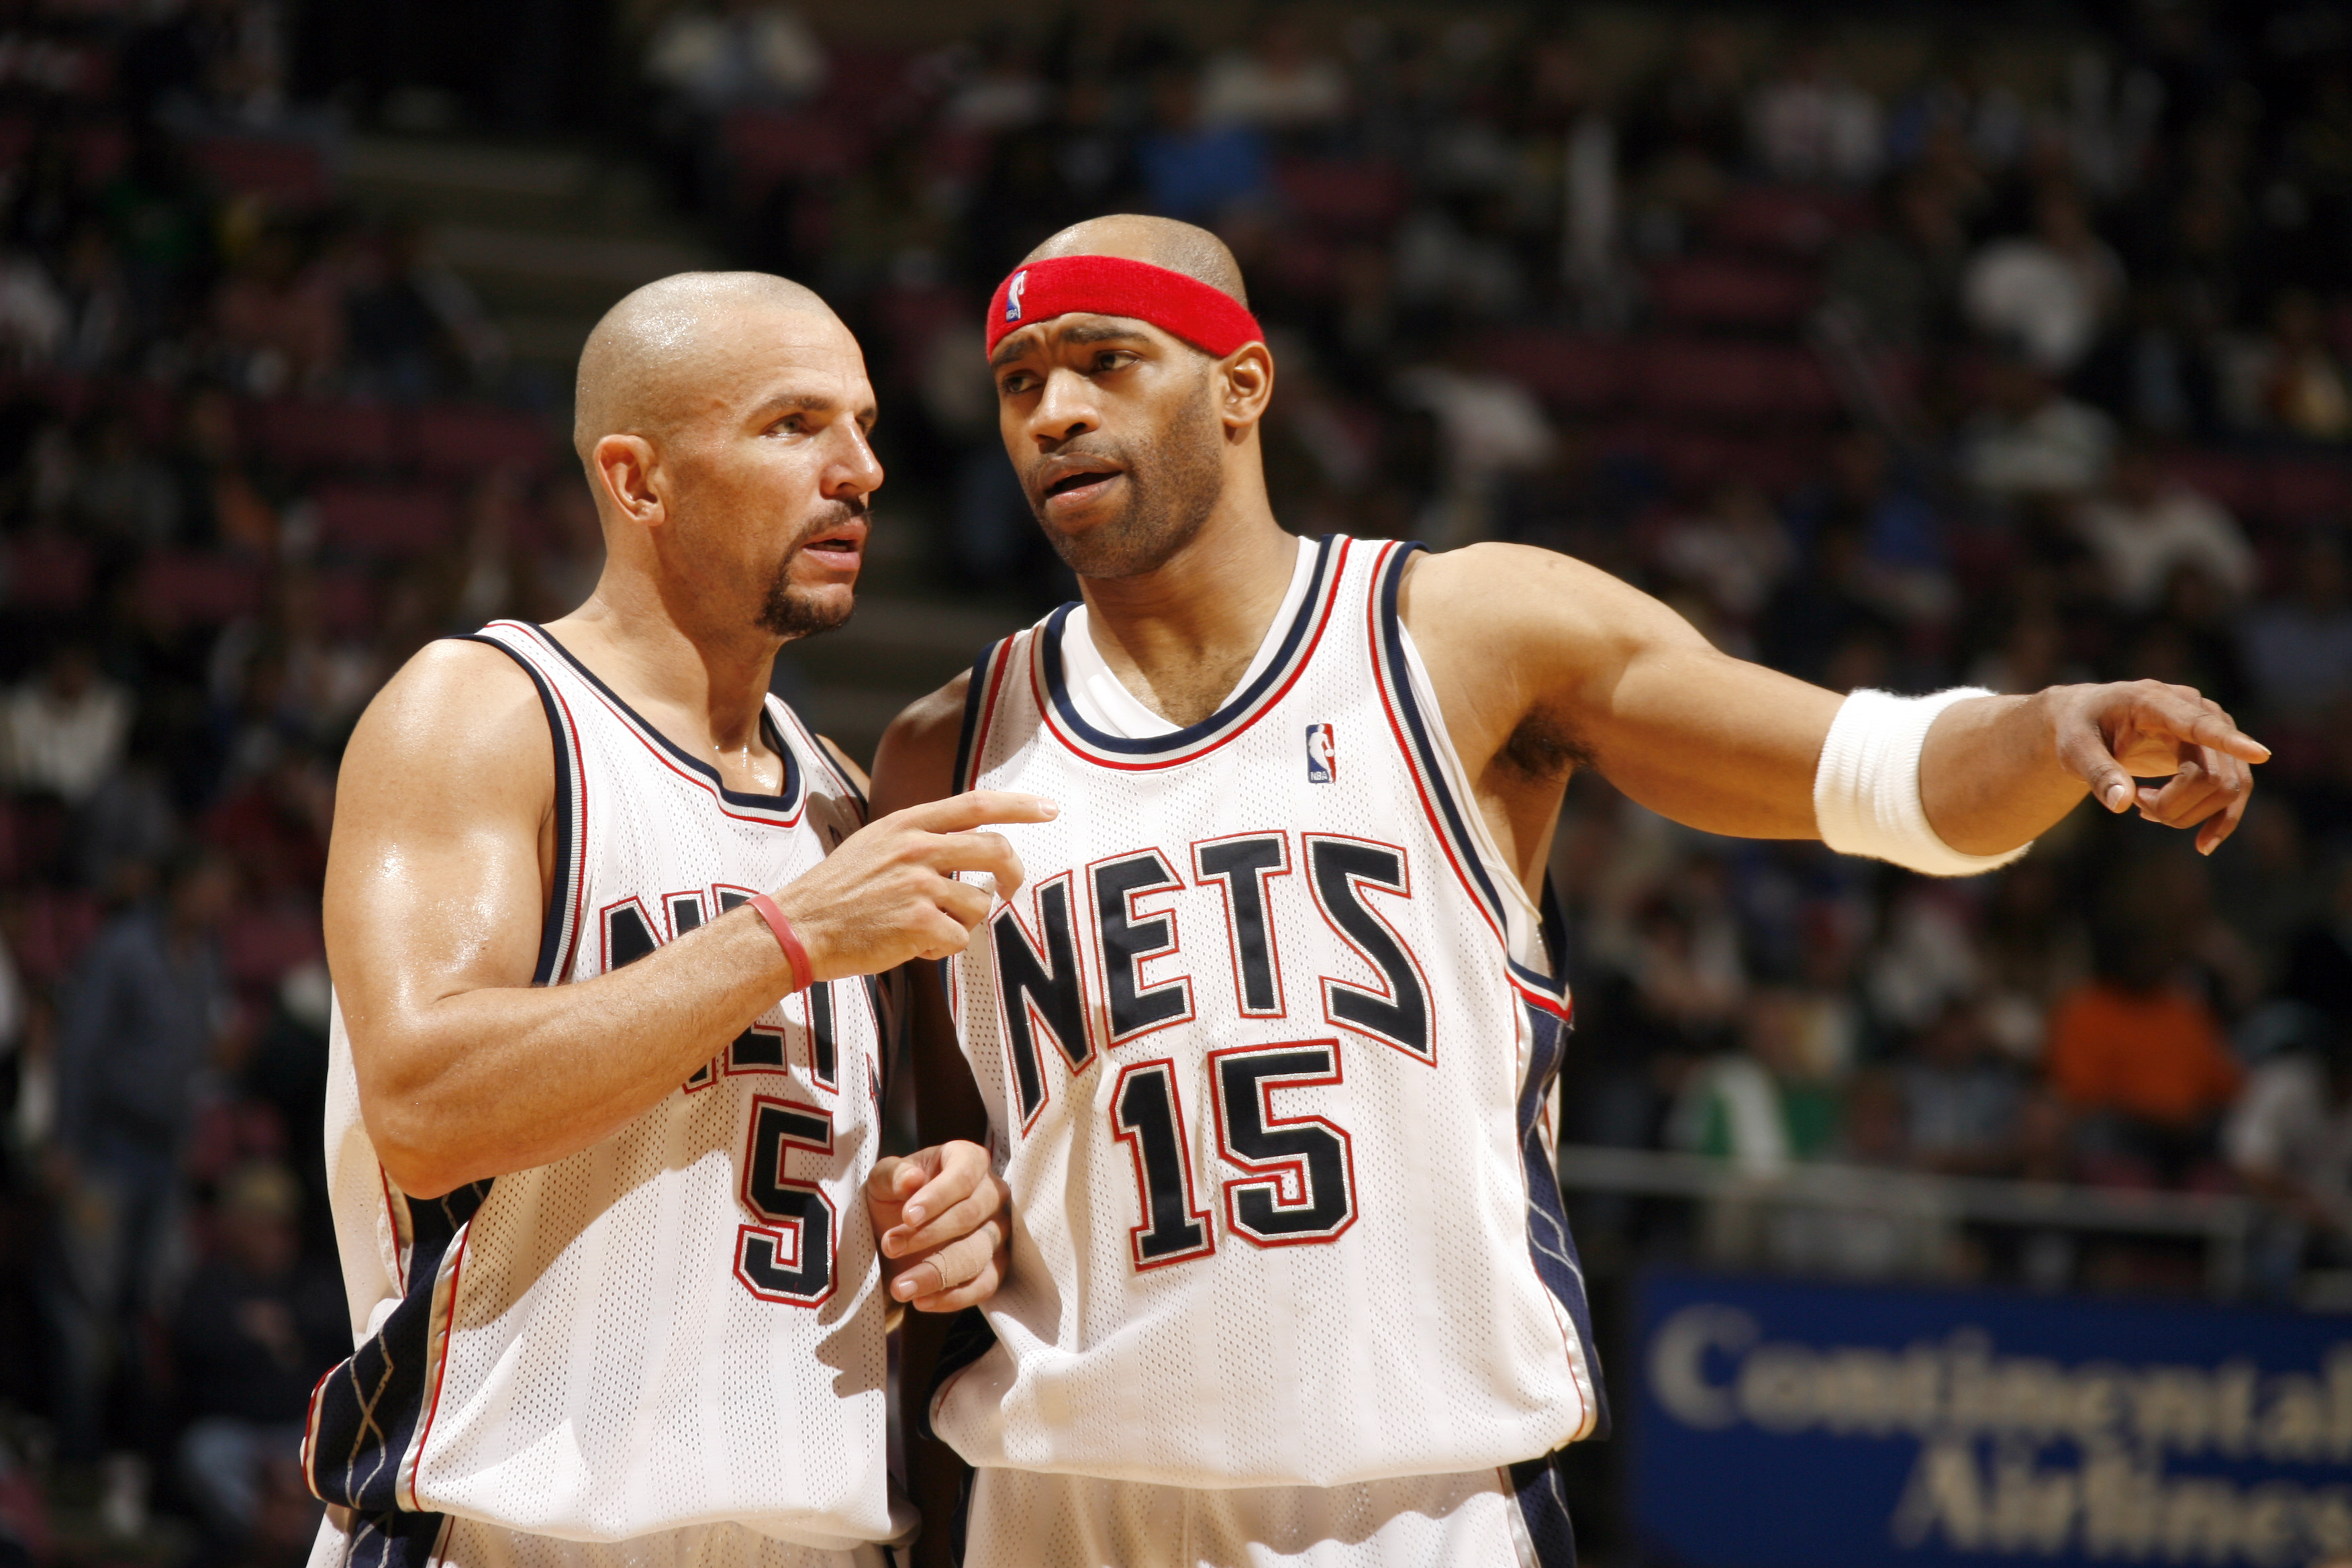 half off 14a4b 5ff44 RANKED: The 25 Greatest Backcourts In NBA History – Page 5 ...